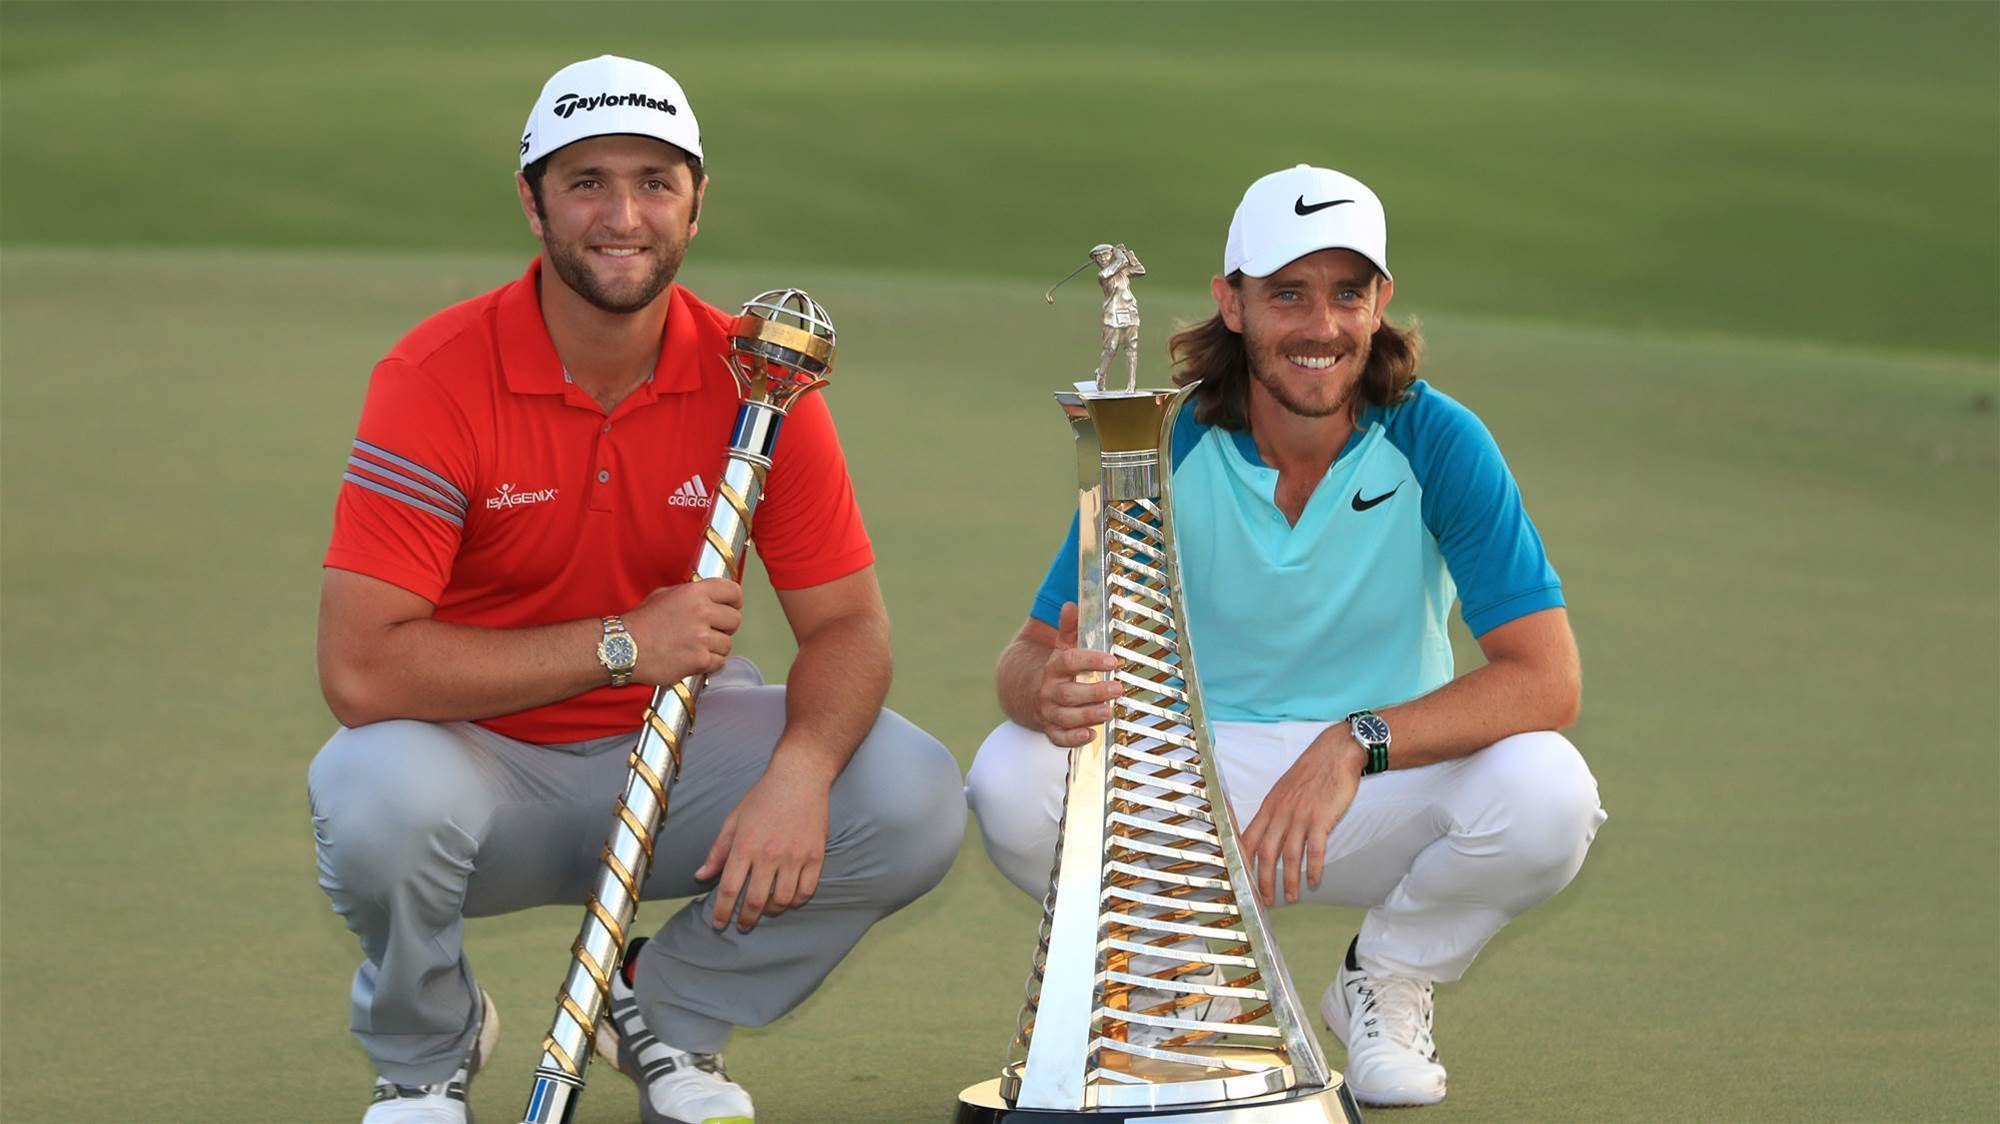 EURO TOUR: Fleetwood claims Race as Rahm surges to win